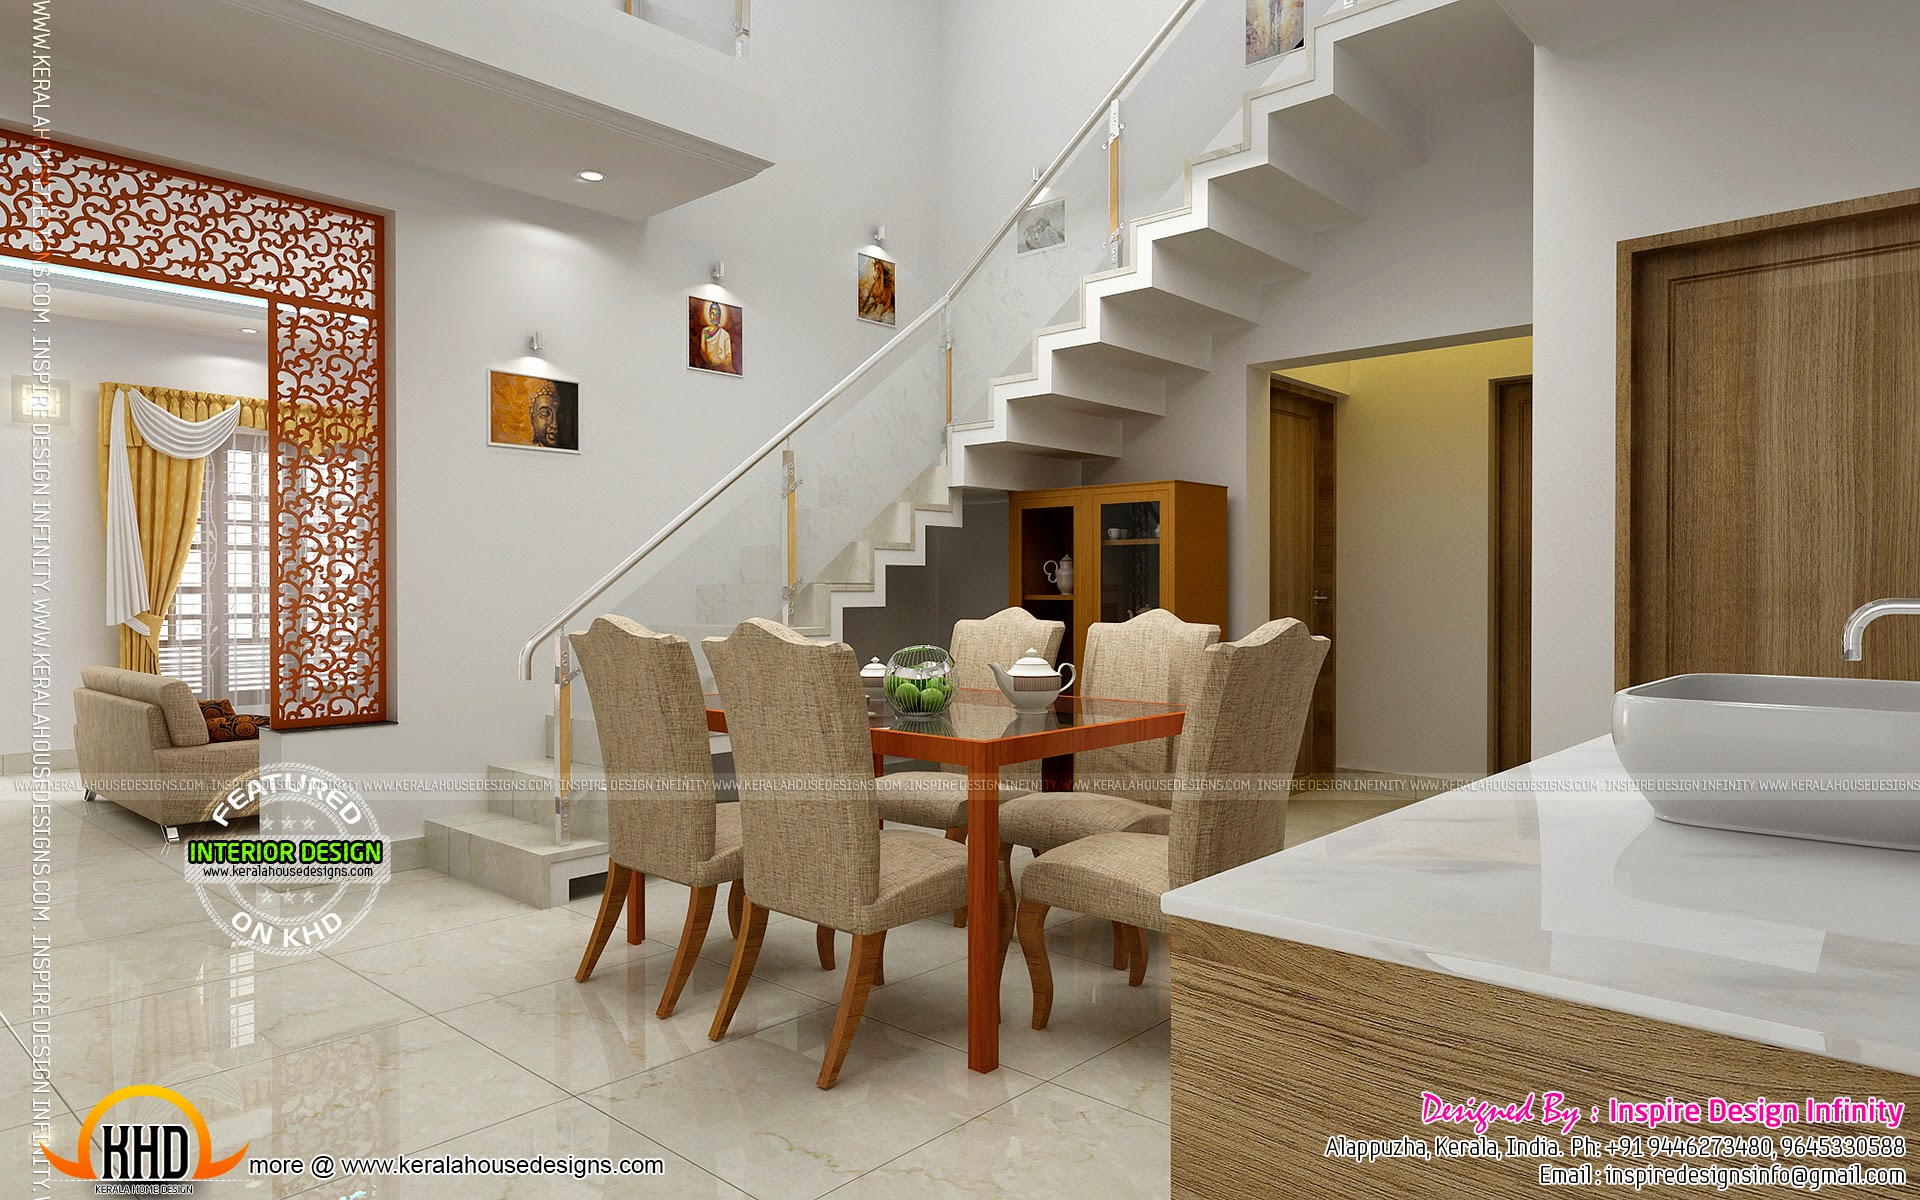 Dining room designs kerala home design and floor plans for Home interior styles